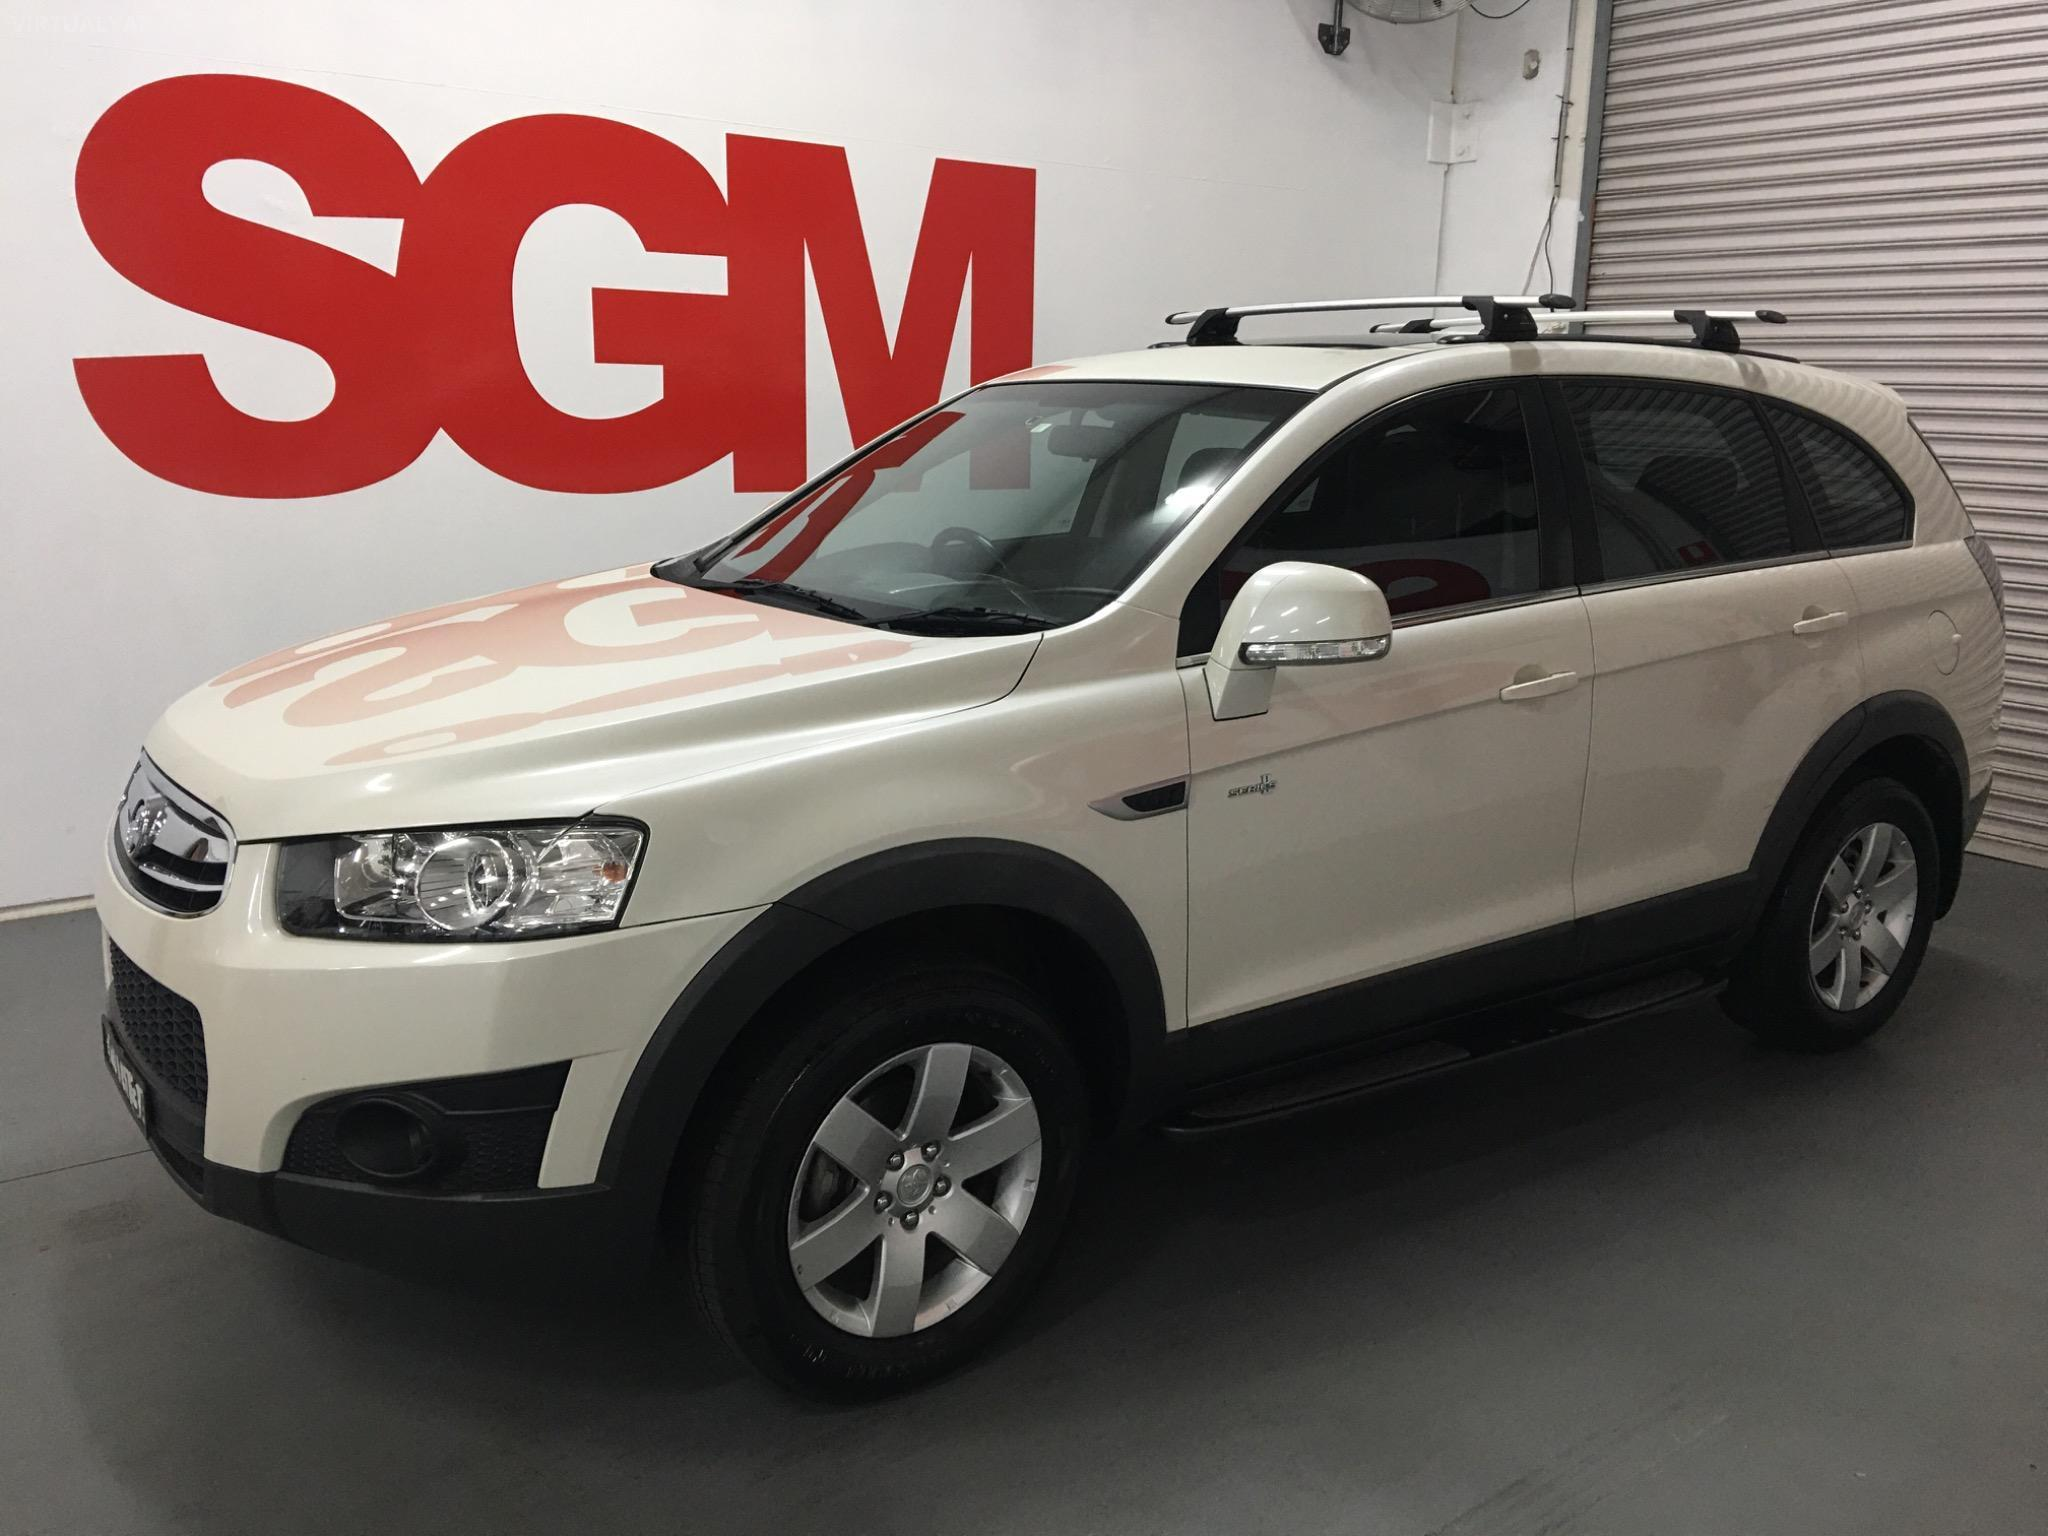 2012 Holden Captiva CG Series II 7 SX Wagon 7st 4dr Spts Auto 6sp 2.2DT (FWD) Picture 8